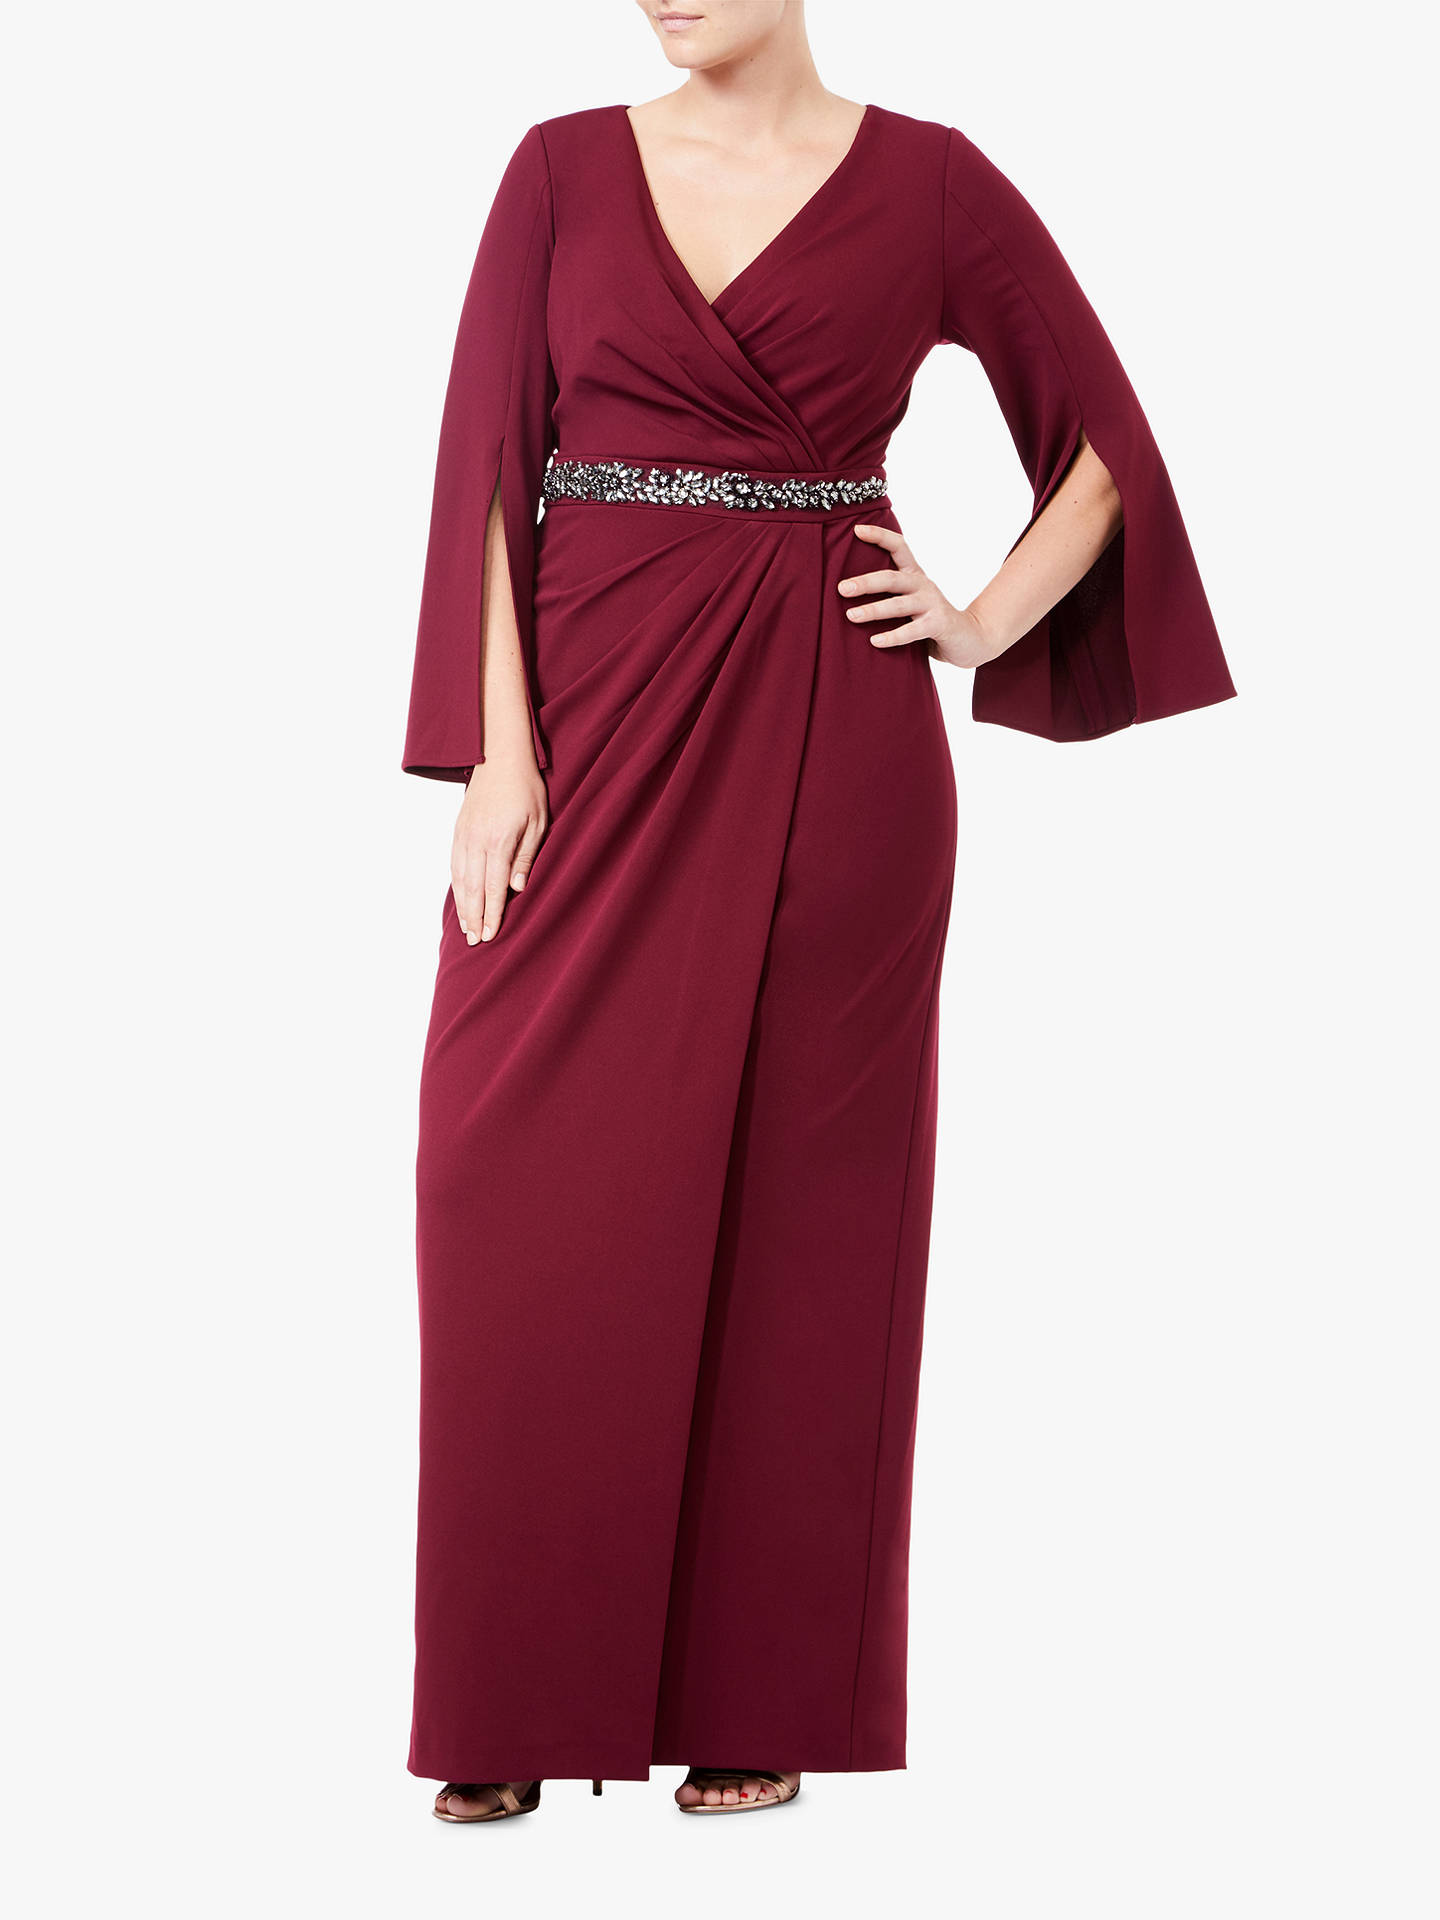 89f608cf331 Buy Adrianna Papell Plus Size Long Split Sleeve Evening Dress